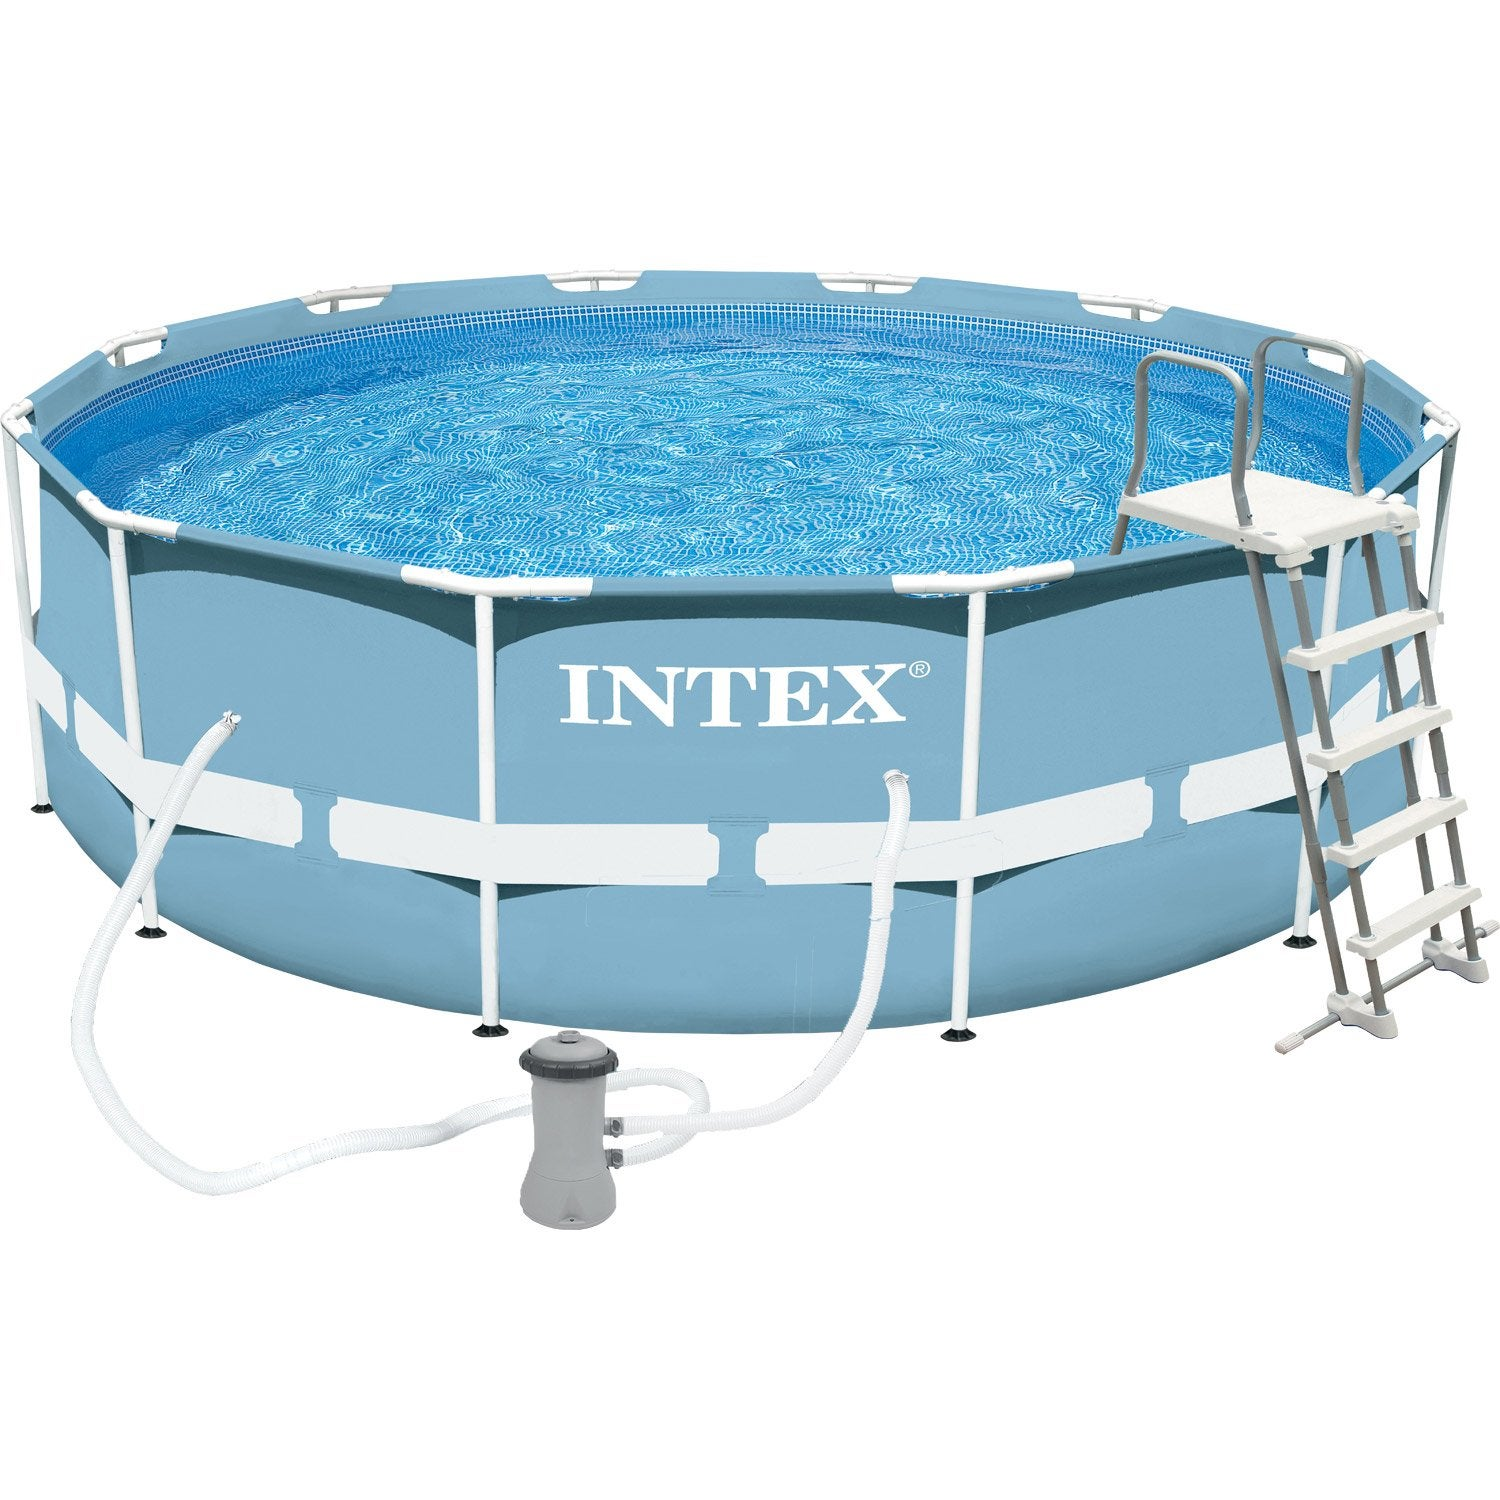 Piscine hors sol autoportante tubulaire prism frame intex for Video x piscine